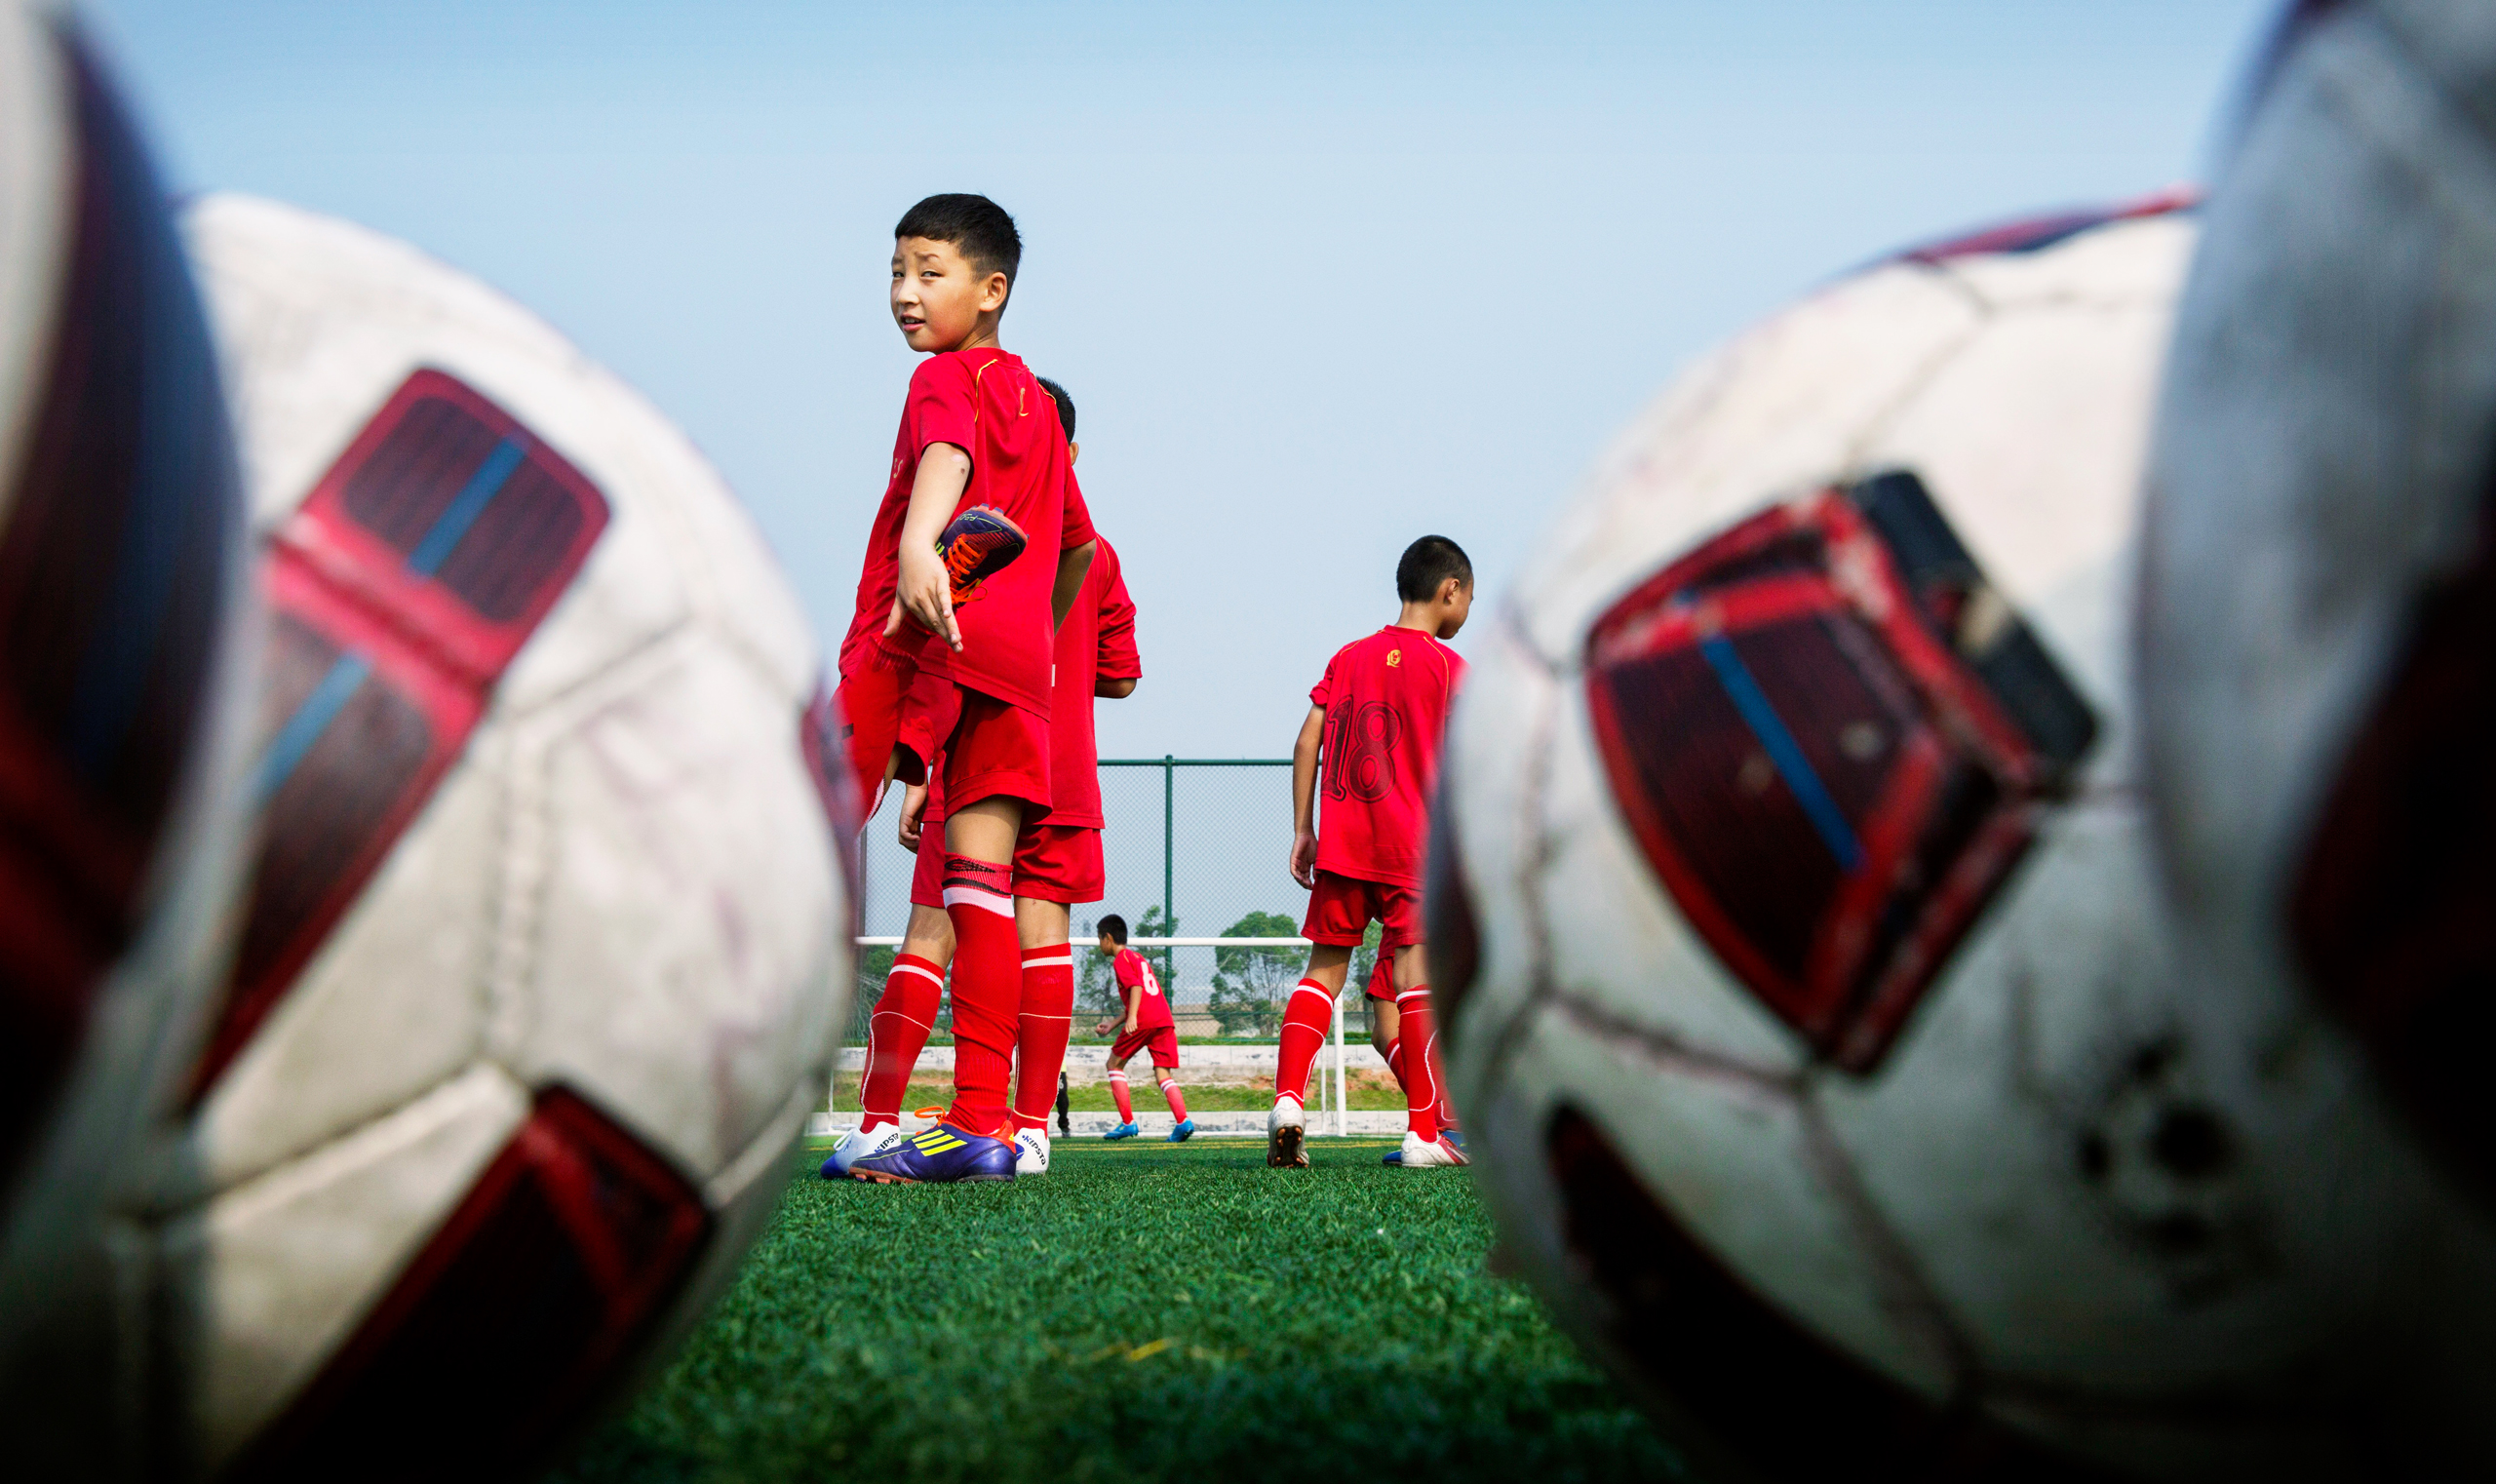 Chinese students wait their turn during training at the Evergrande Football School near Qingyuan